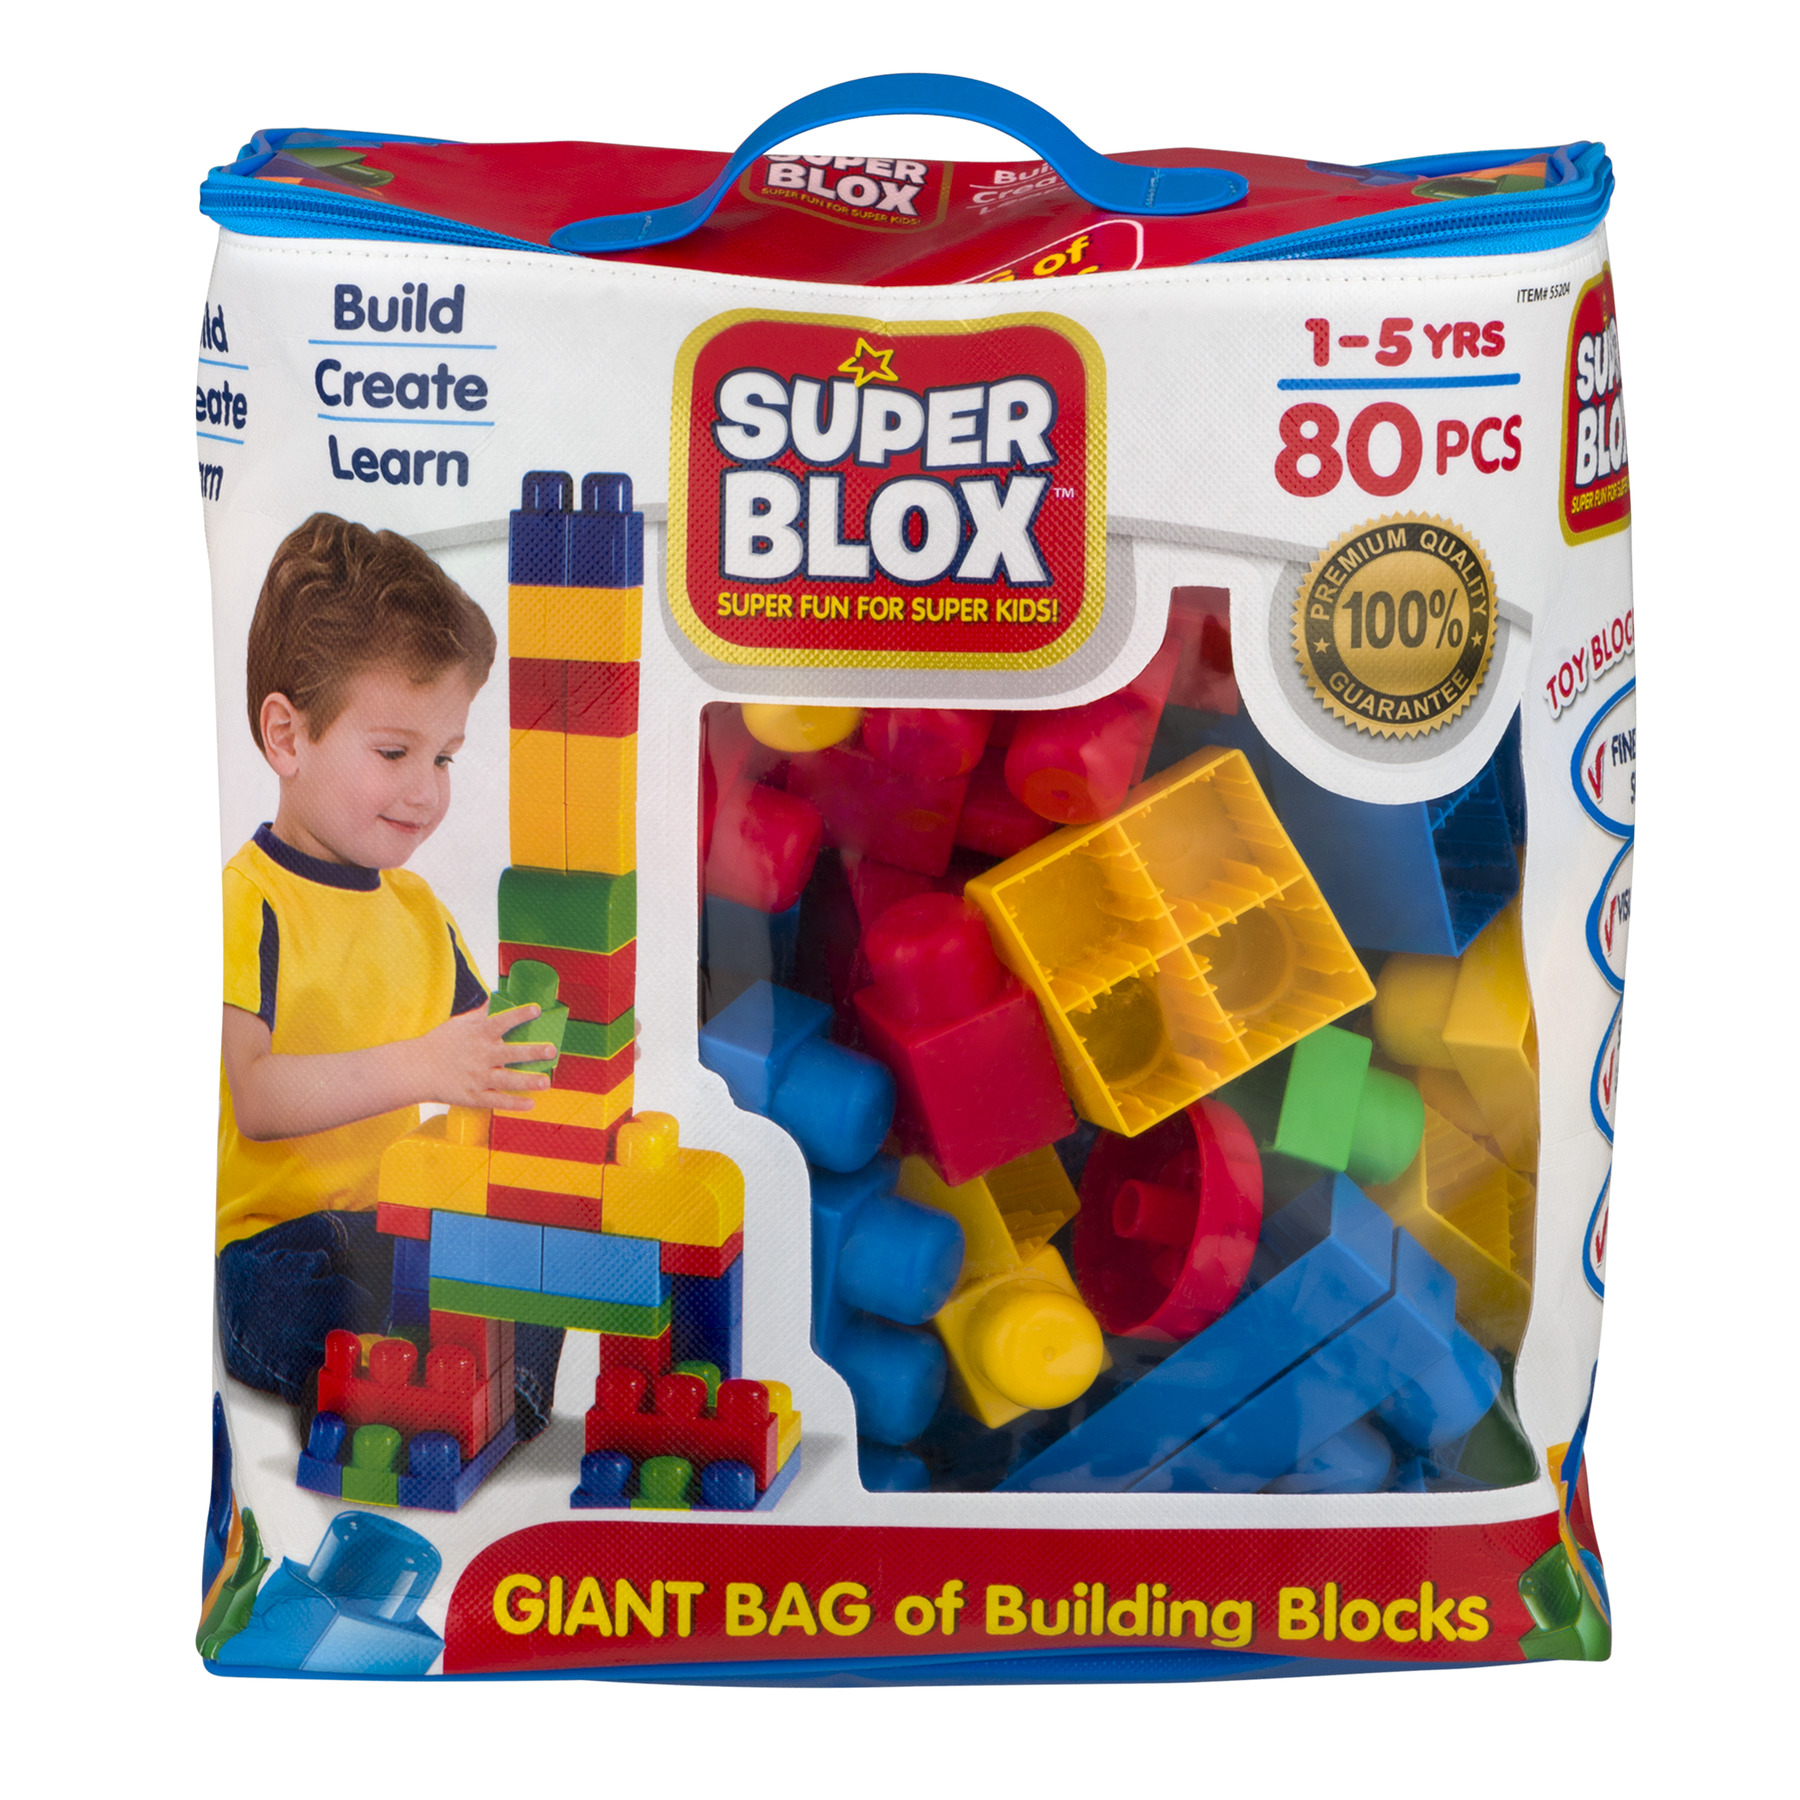 Cra-Z-Art Super Blox, 80.0 PIECE(S) by LaRose Industries, LLC